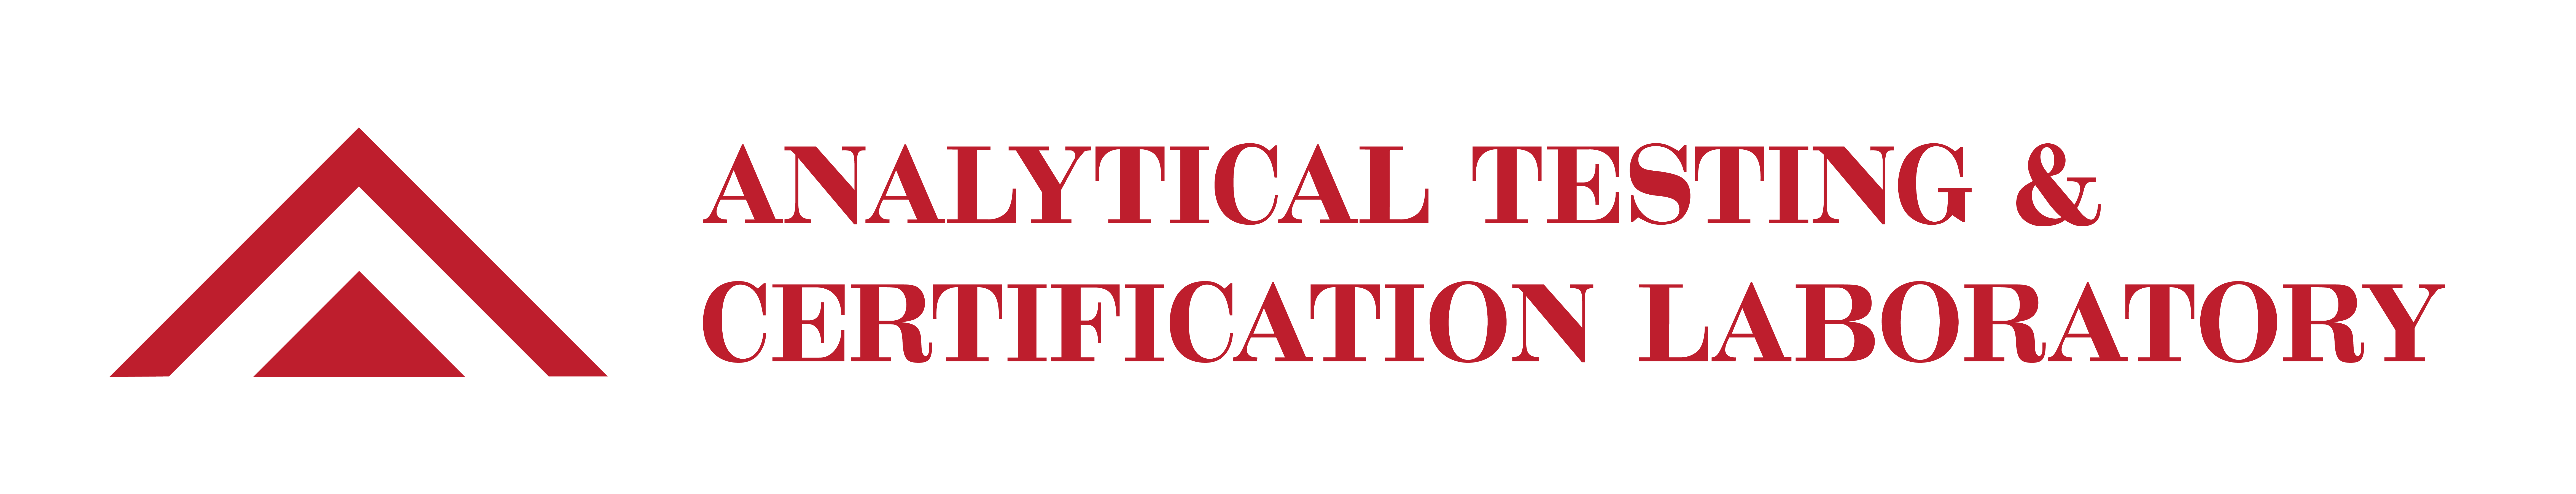 Terms Conditions Analytical Testing Certification Laboratory